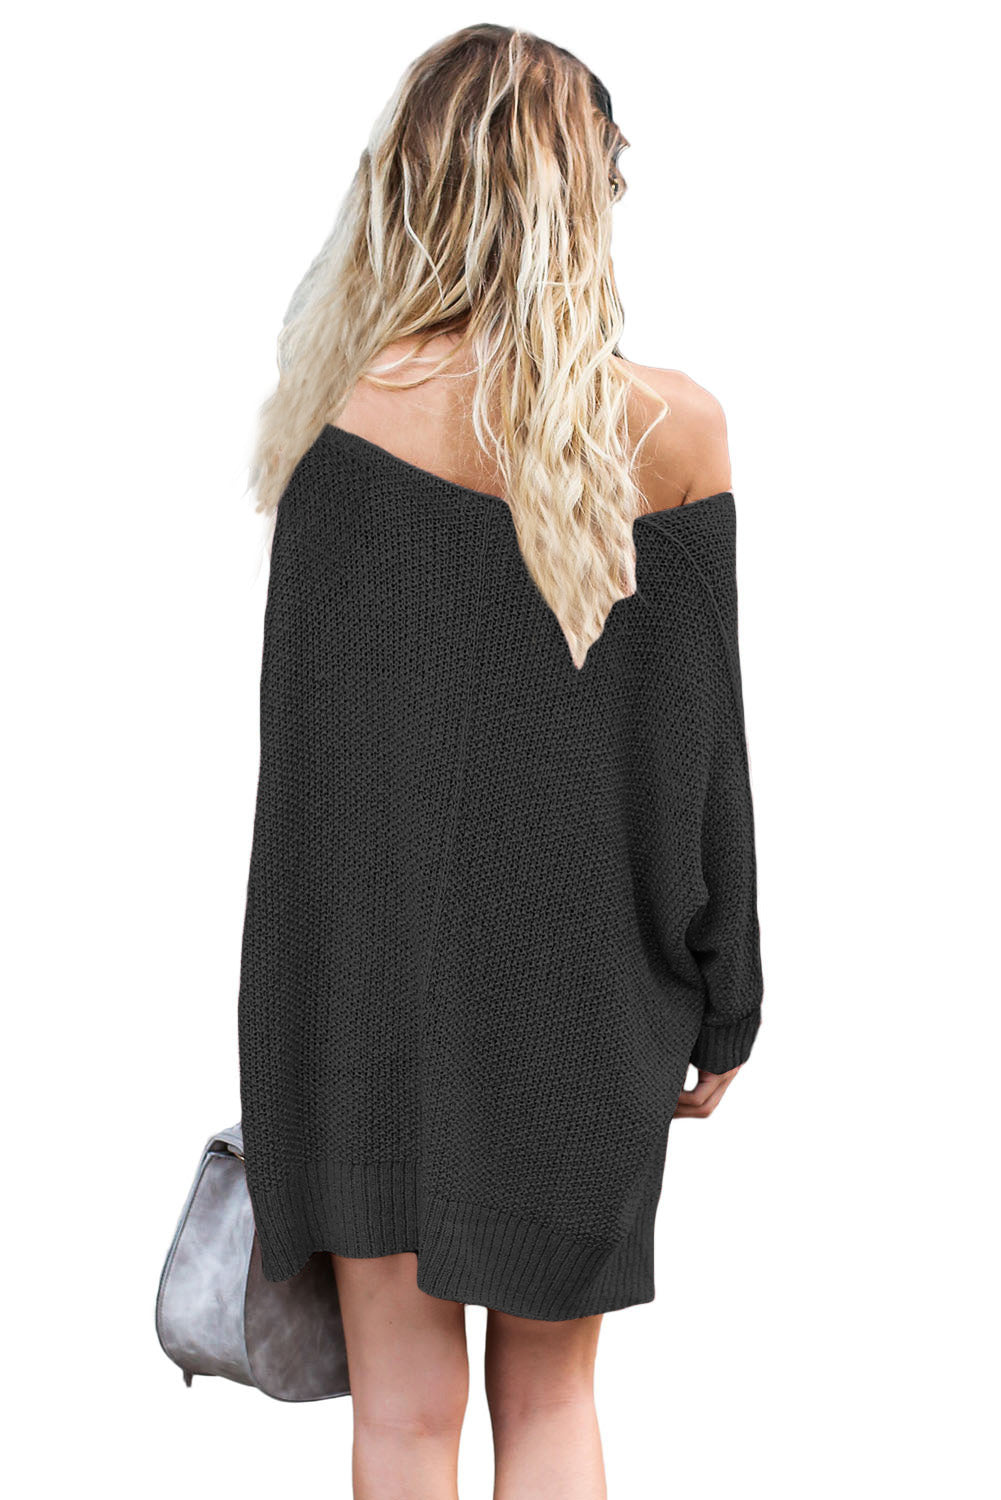 Her Fashion Oversized Black Knit High-low Slit Side Trendy Sweater